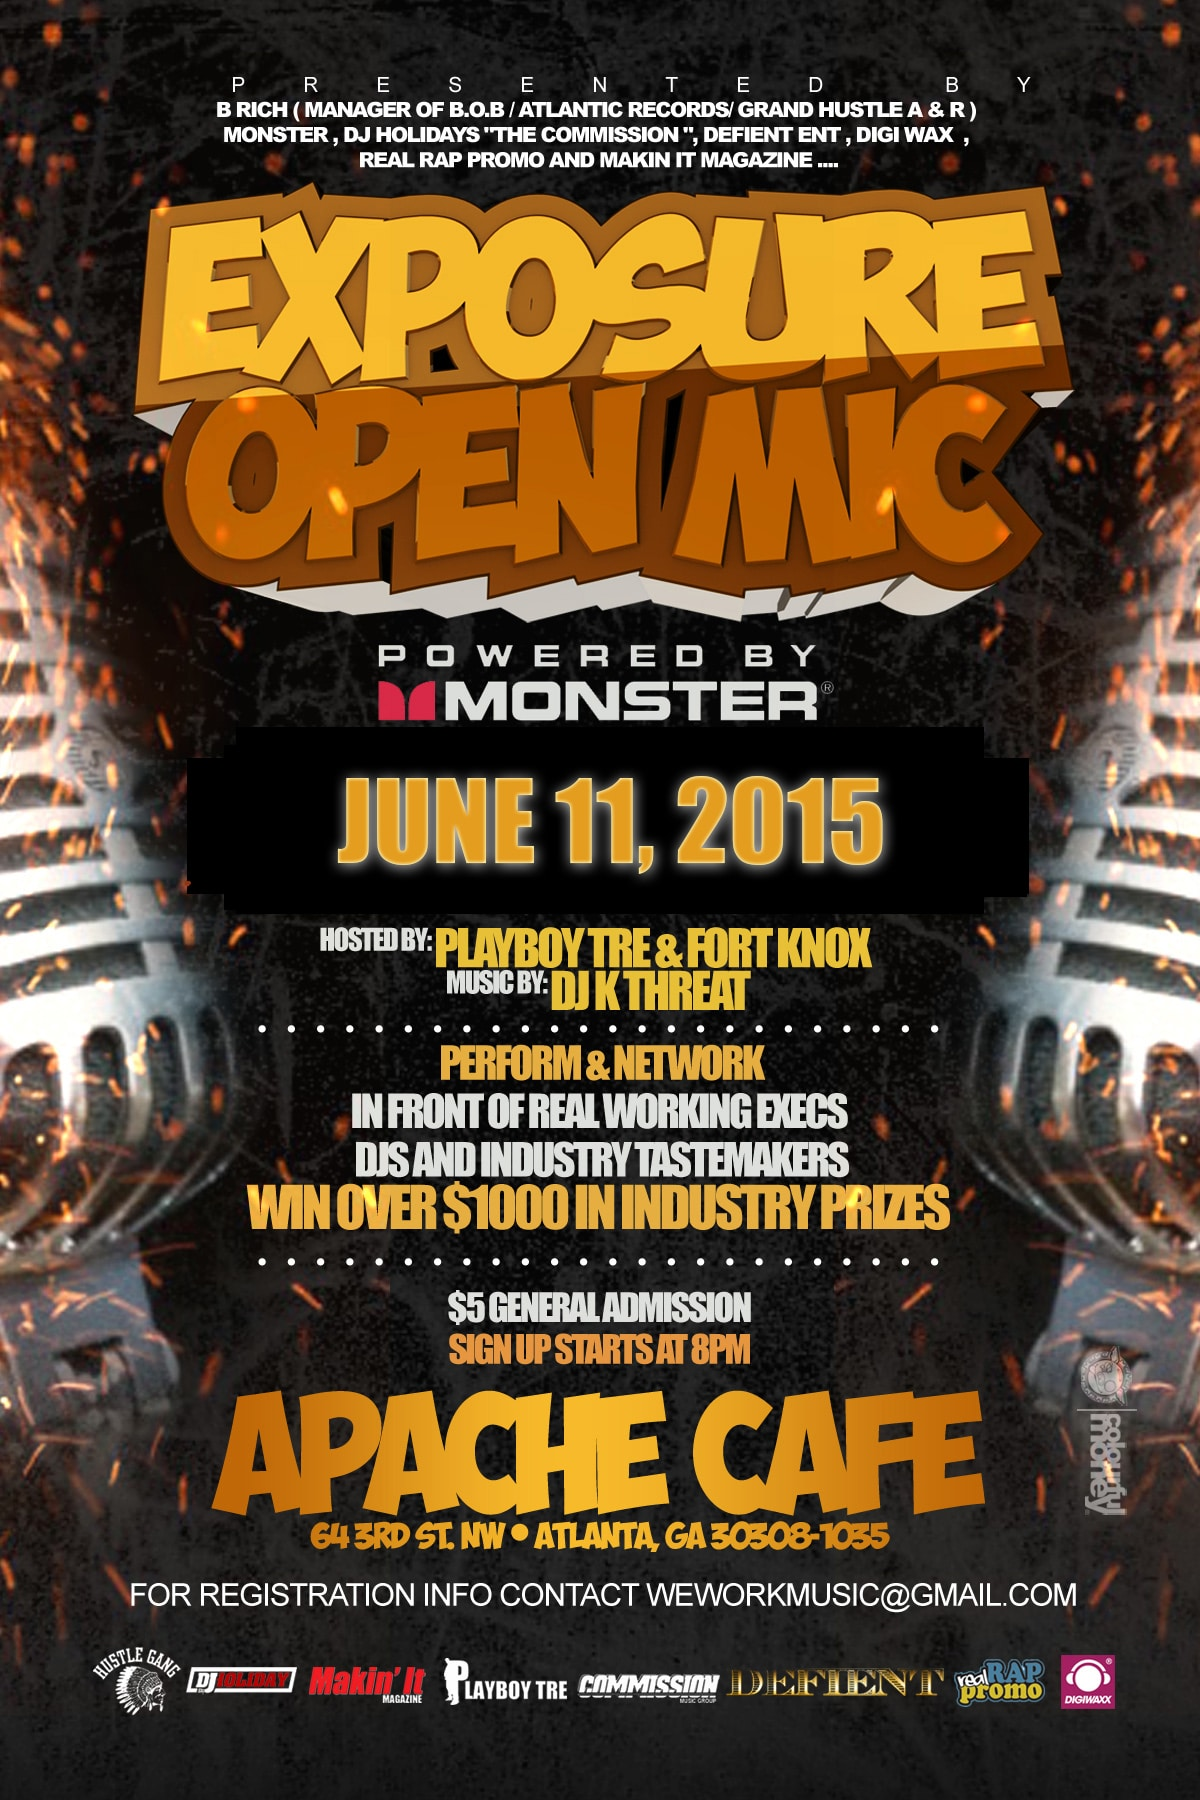 Exposure Open Mic